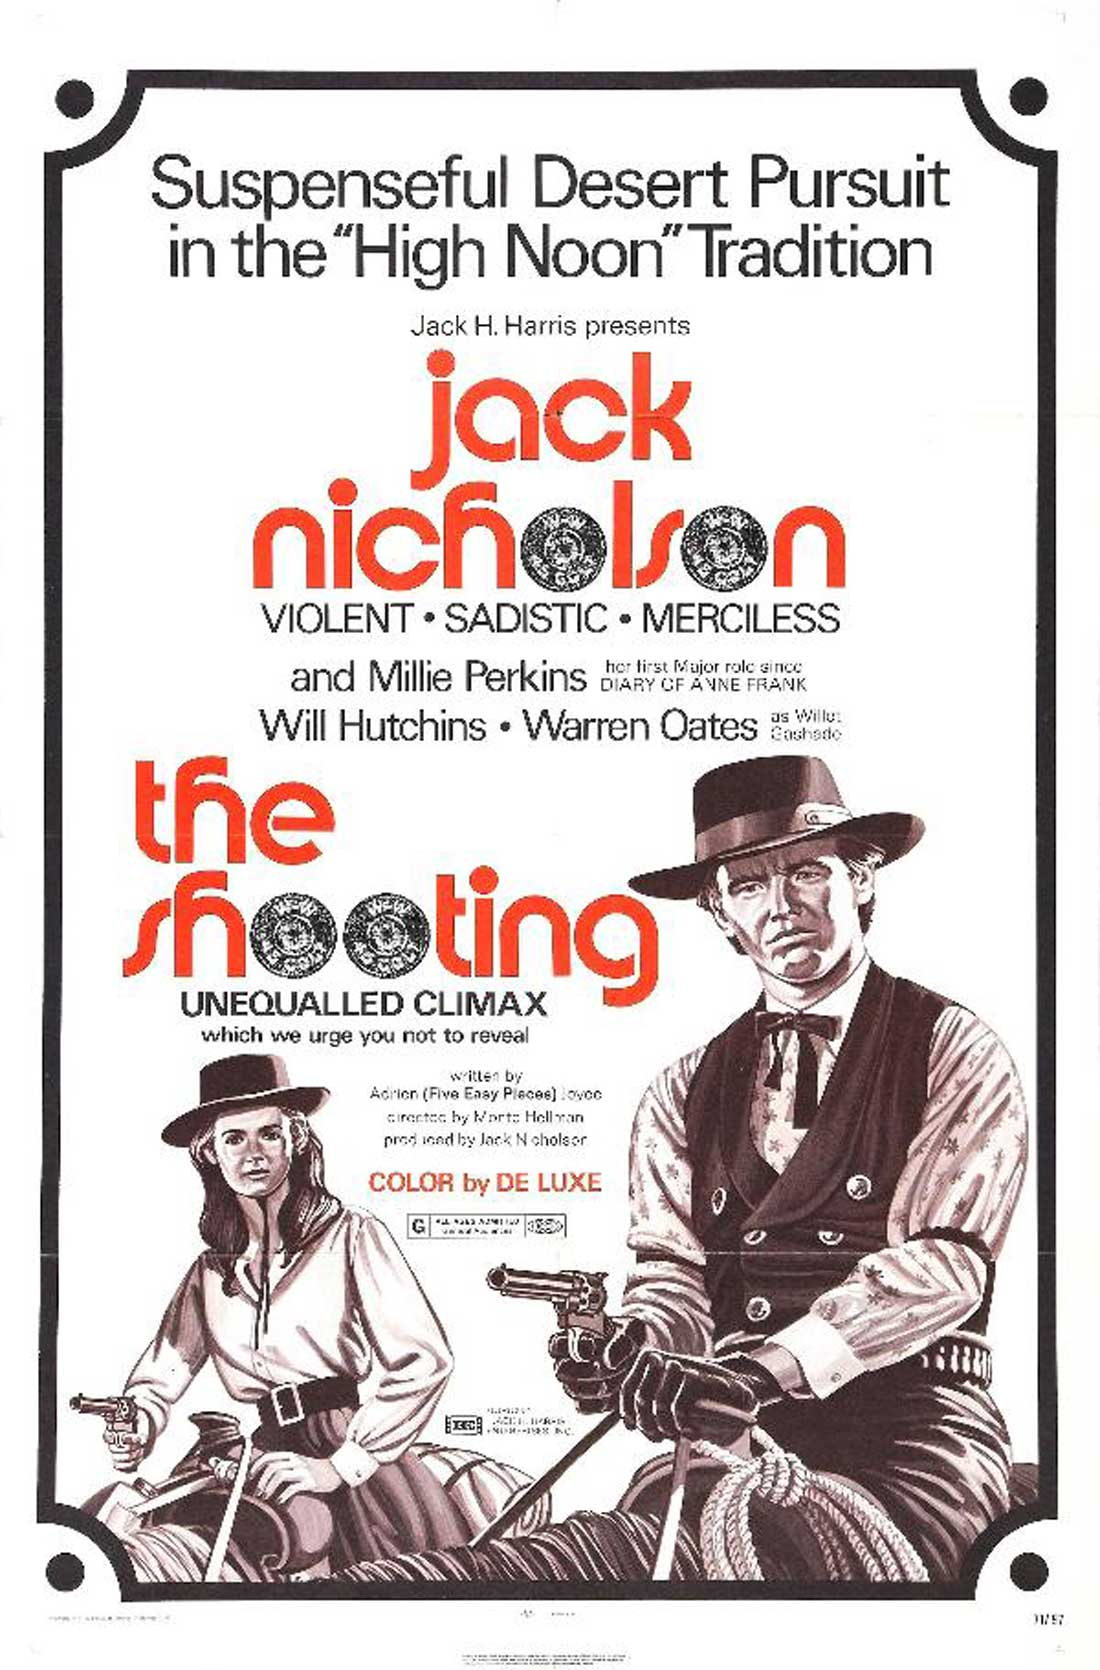 A poster for The Shooting, playing at the Modern as part of ArthouseFW.